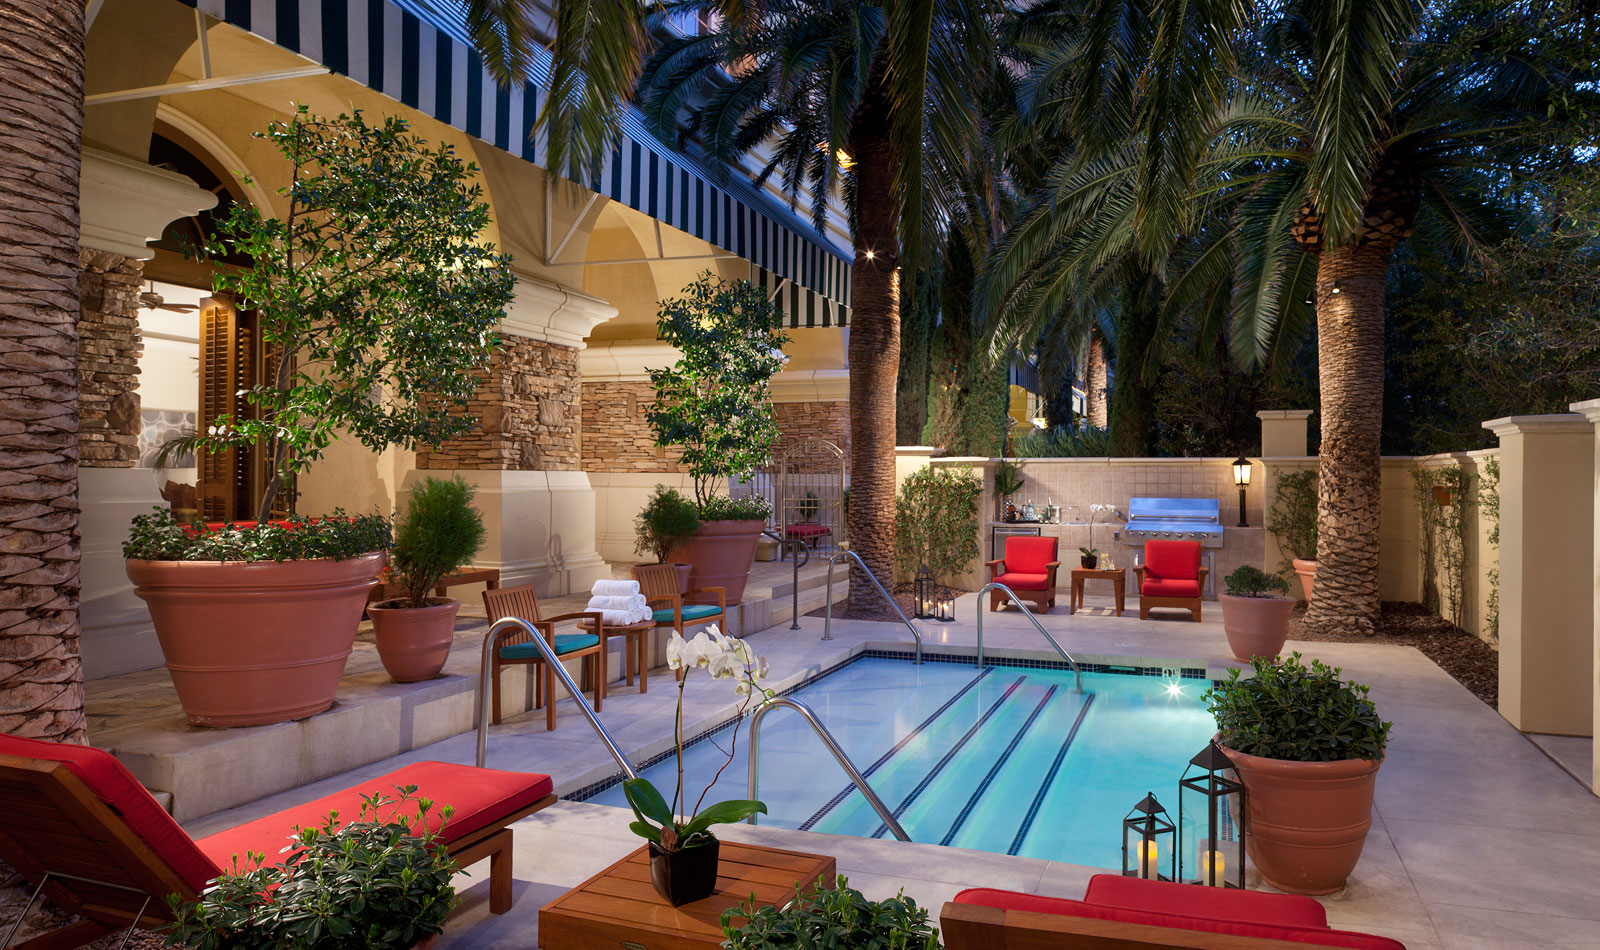 2 Bedroom Private Pool Suites In Las Vegas Gvr Villa Suite